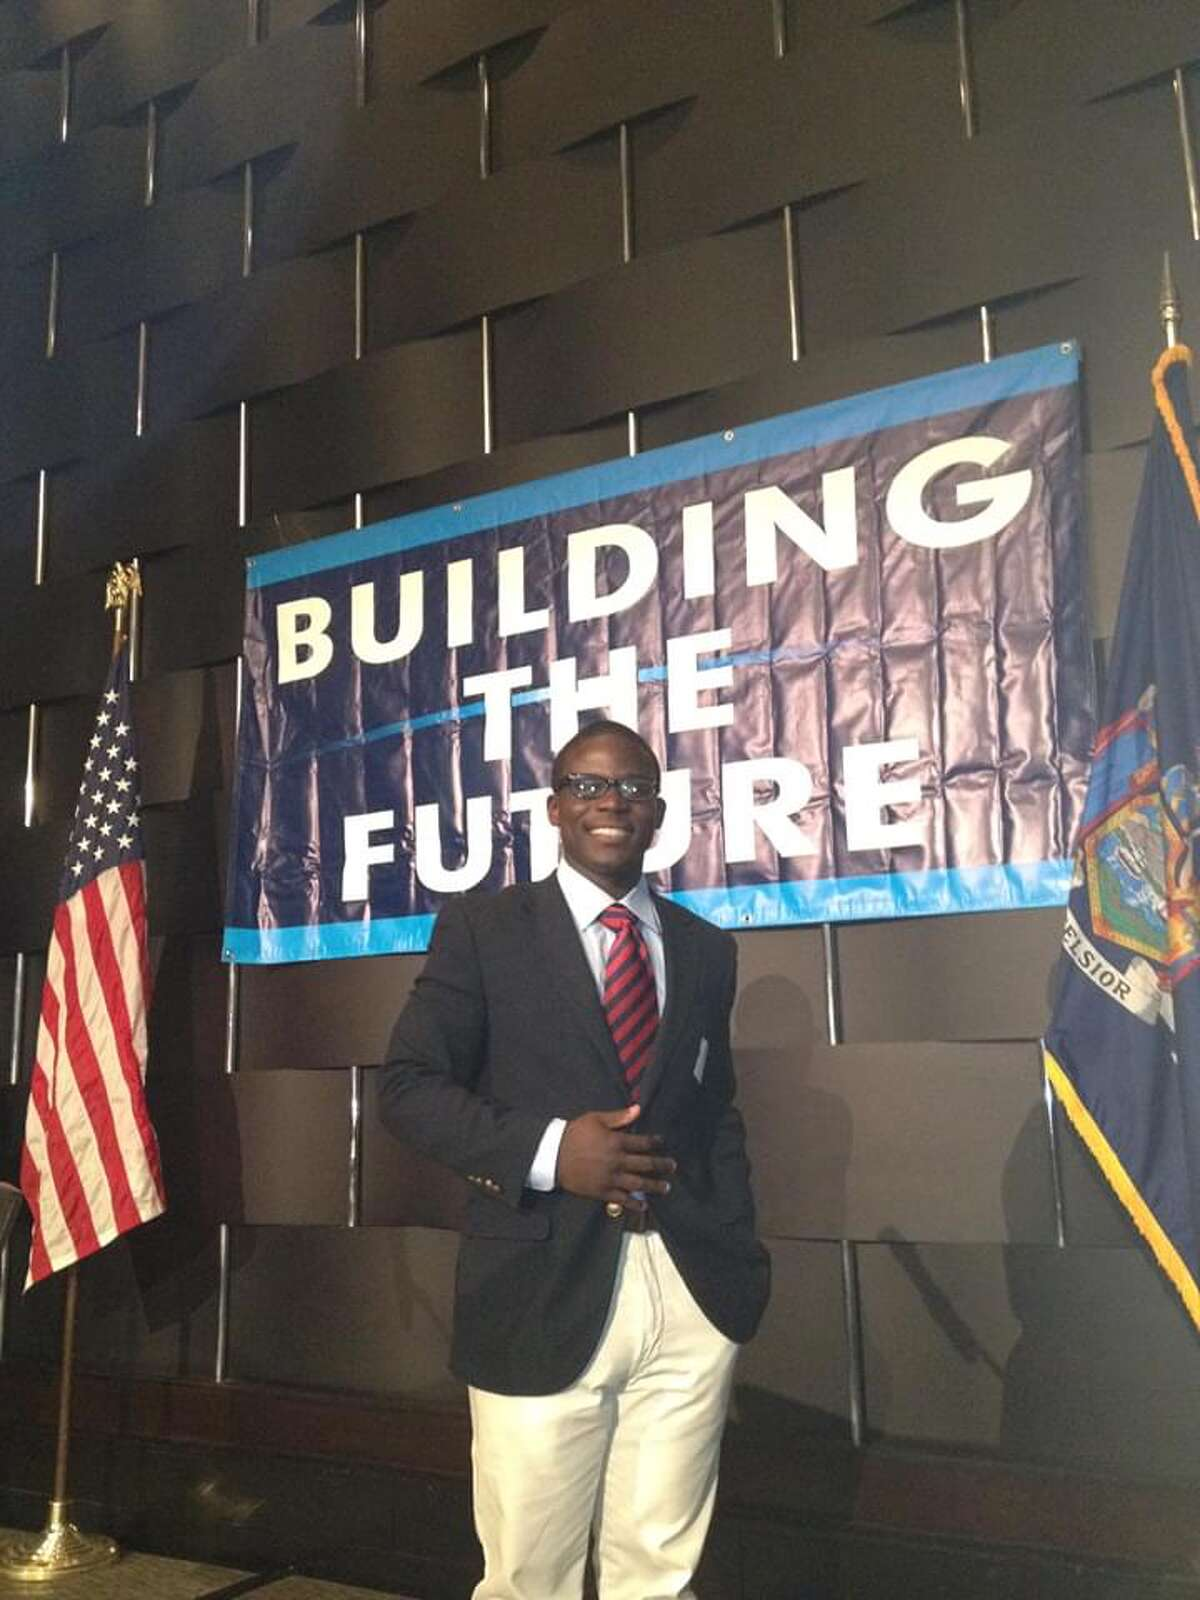 2. I was the vice president of the Albany College democrats.